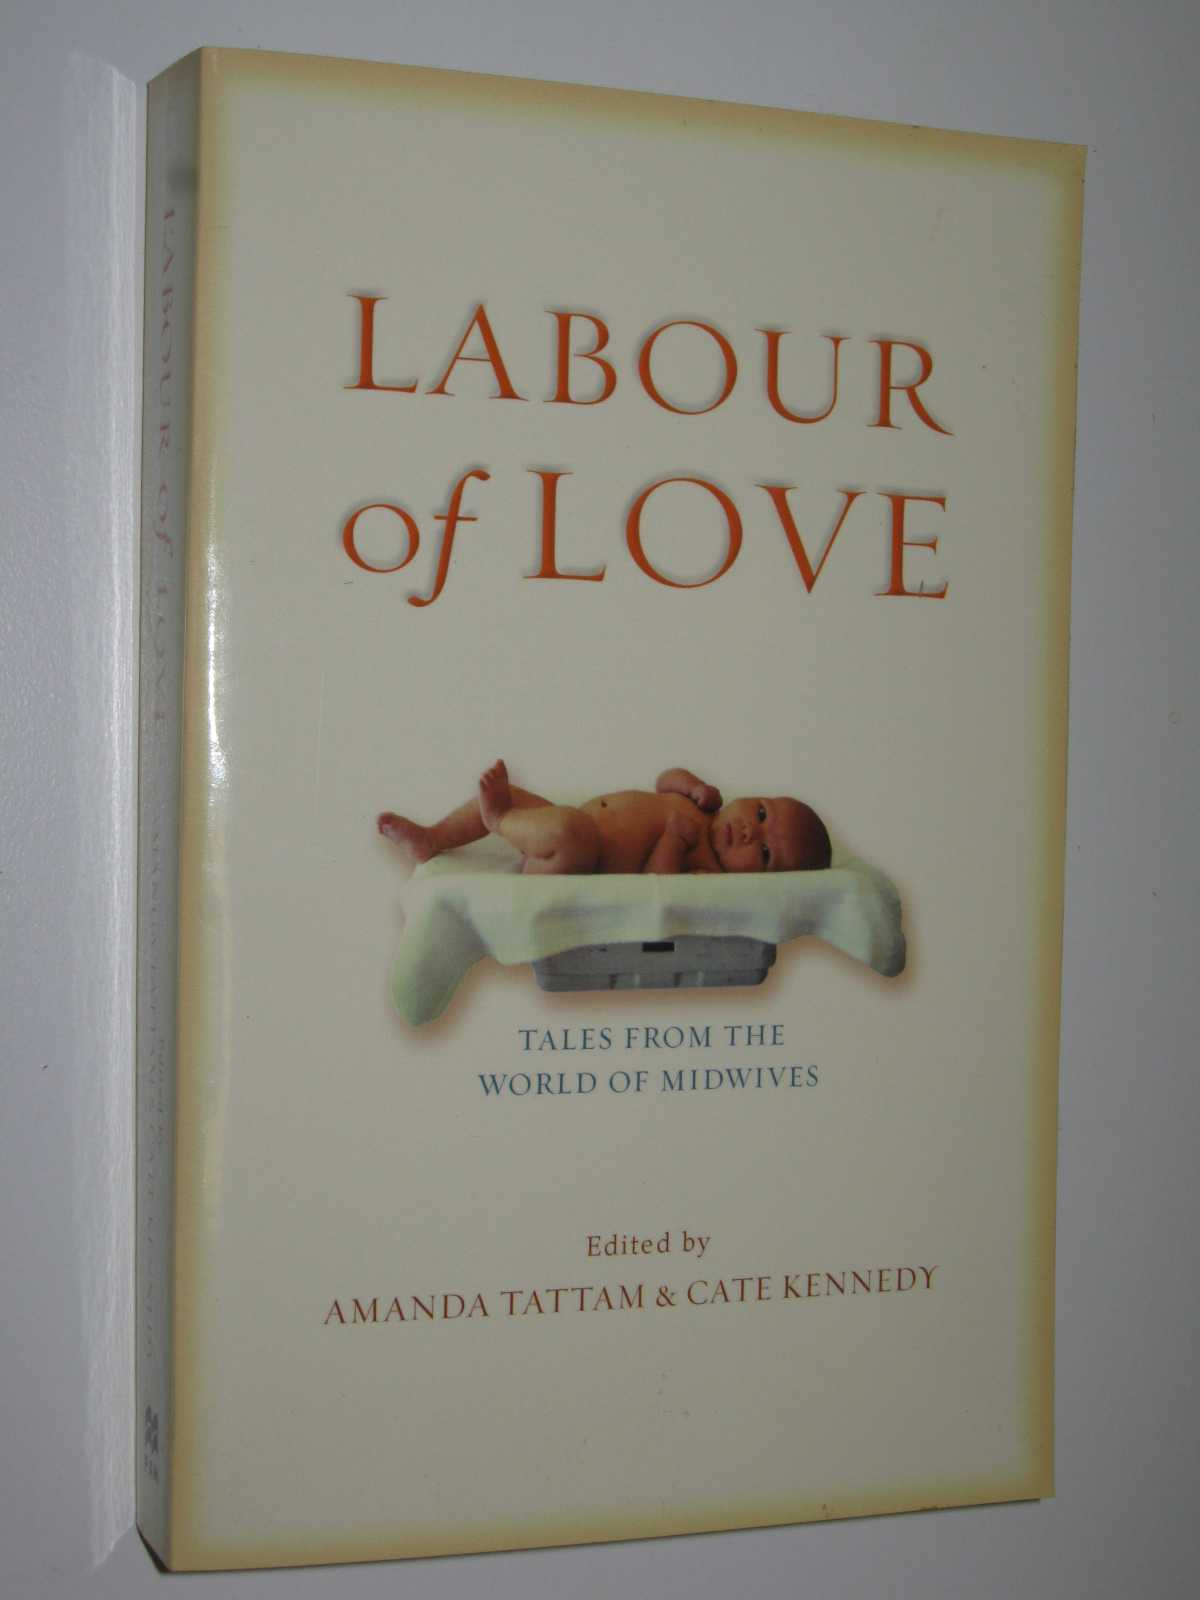 Labour of Love : Tales from the World of Midwives, Tattam,Amanda & Kennedy, Cate (edited)